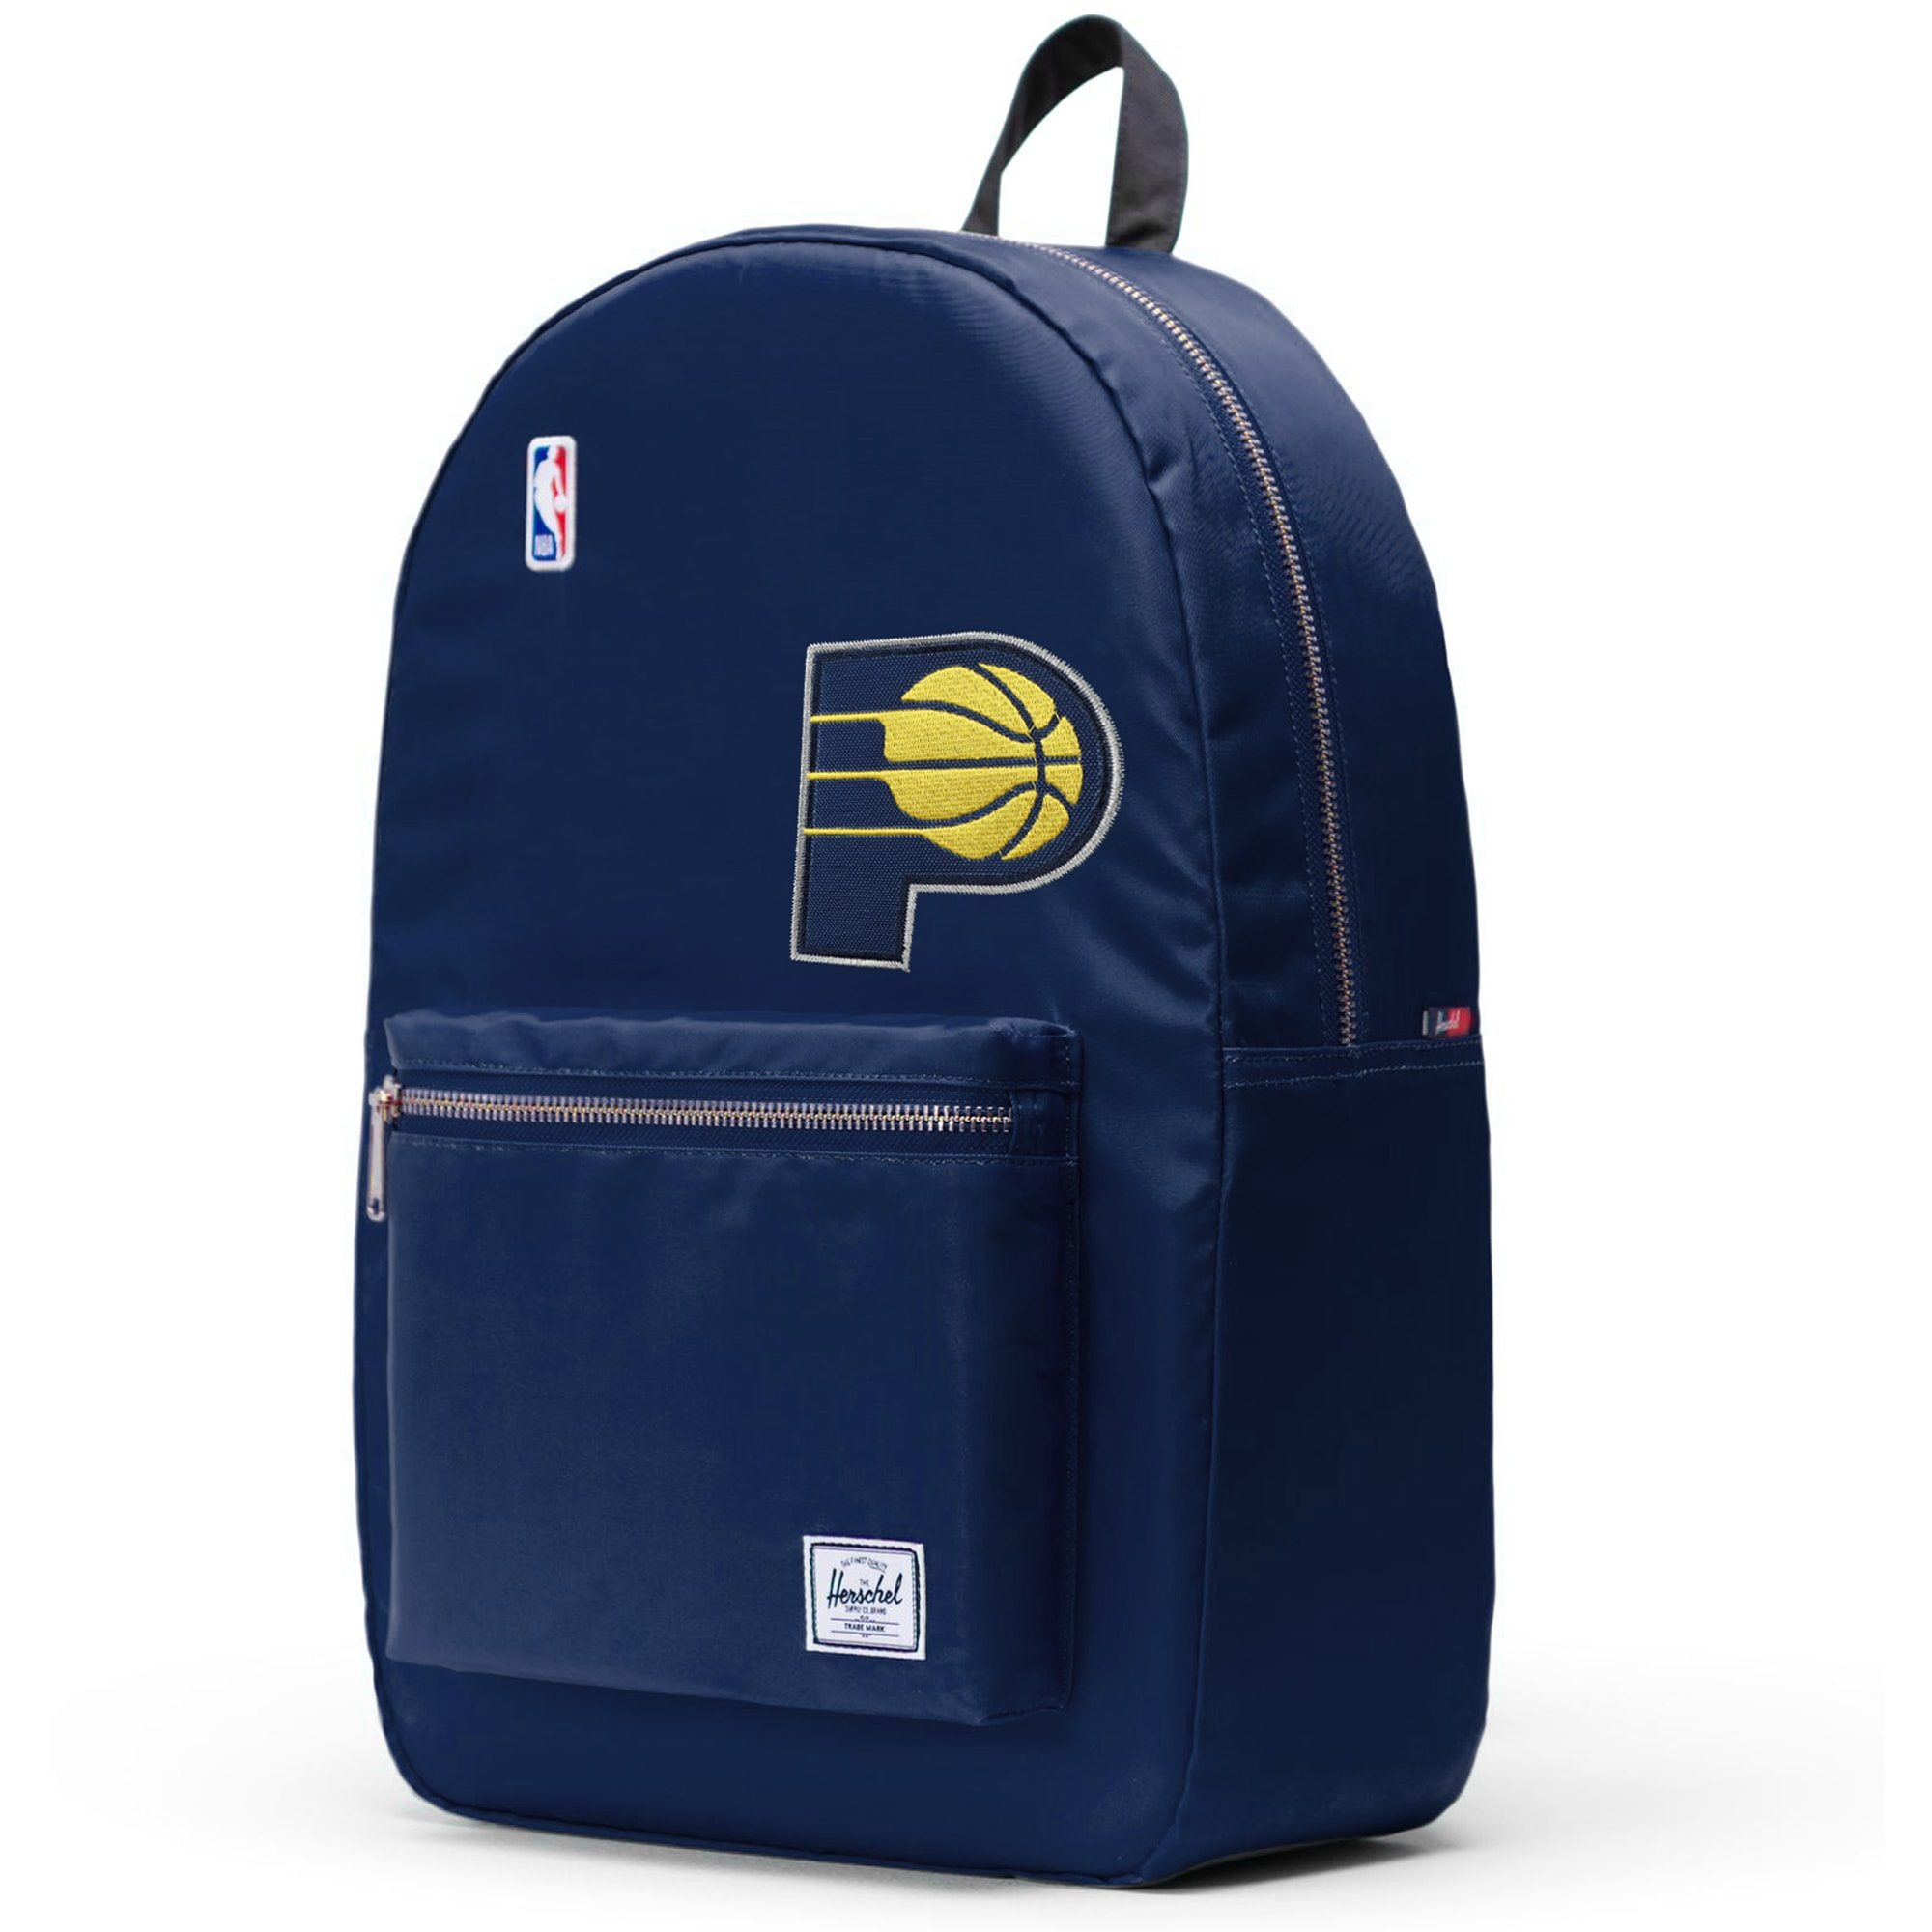 Indiana Pacers Herschel Supply Co. Satin Settlement Backpack - Navy